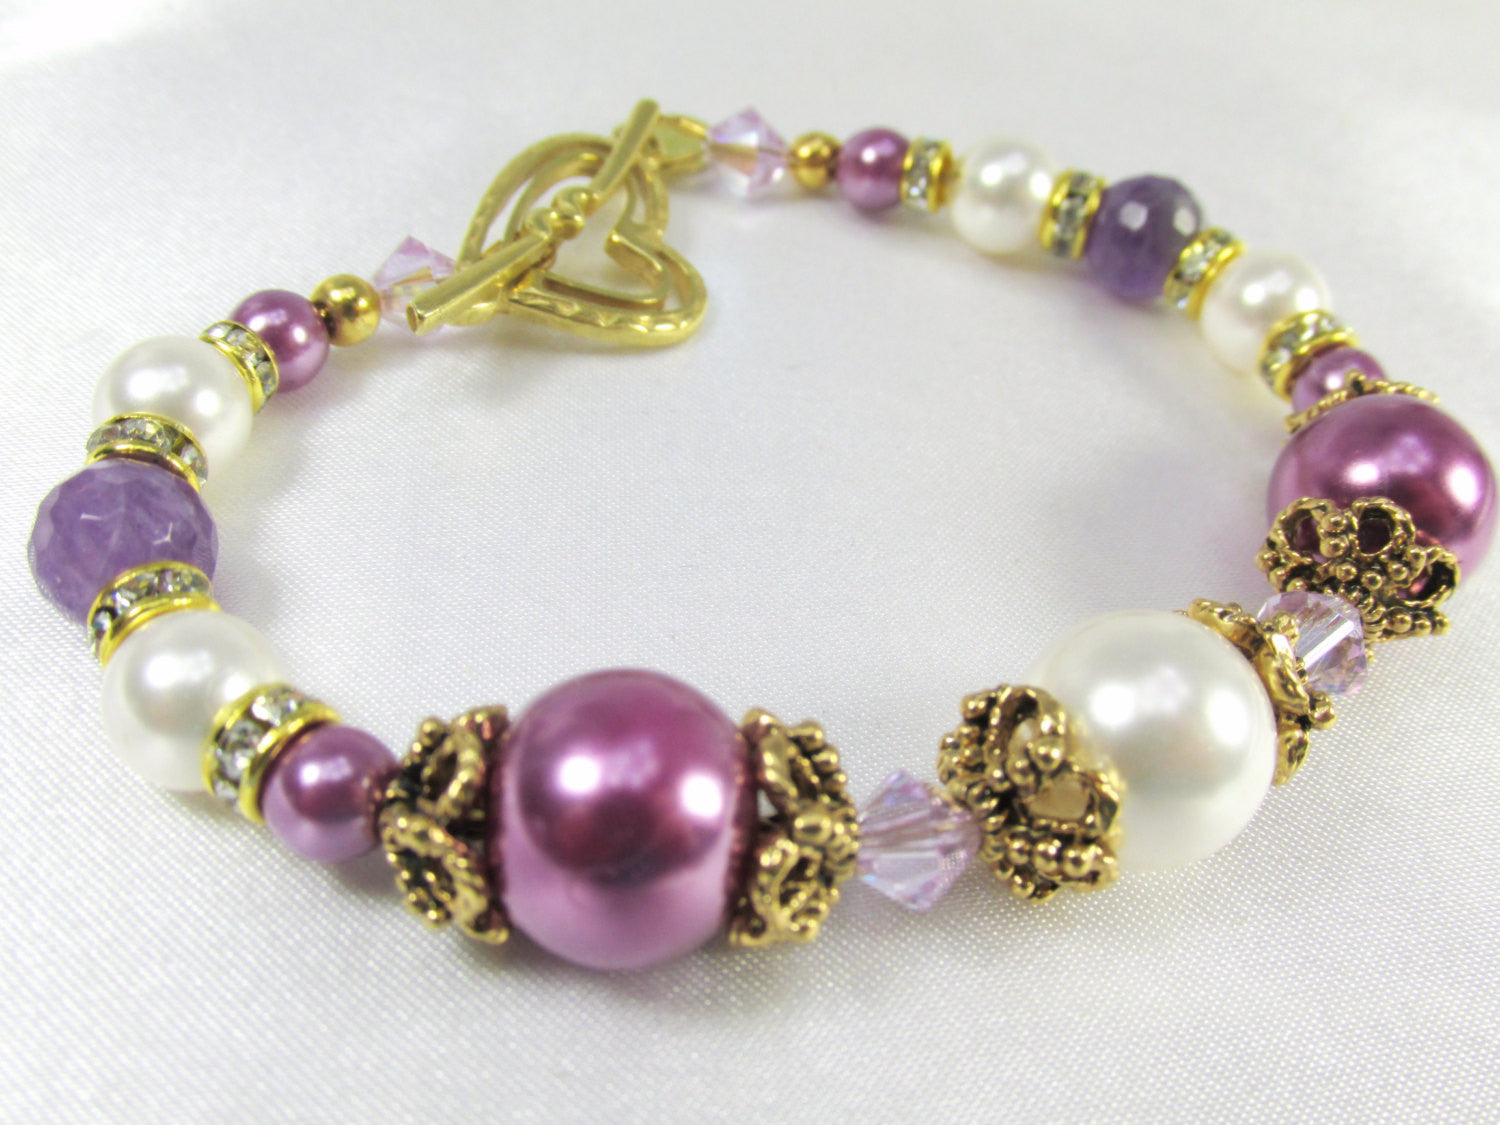 Radiant Orchid Bracelet in Swarovski Pearls, Crystals, and Faceted Amethyst Gemstones Vintage inspired Bridal or Bridemaid Bracelet - Odyssey Creations